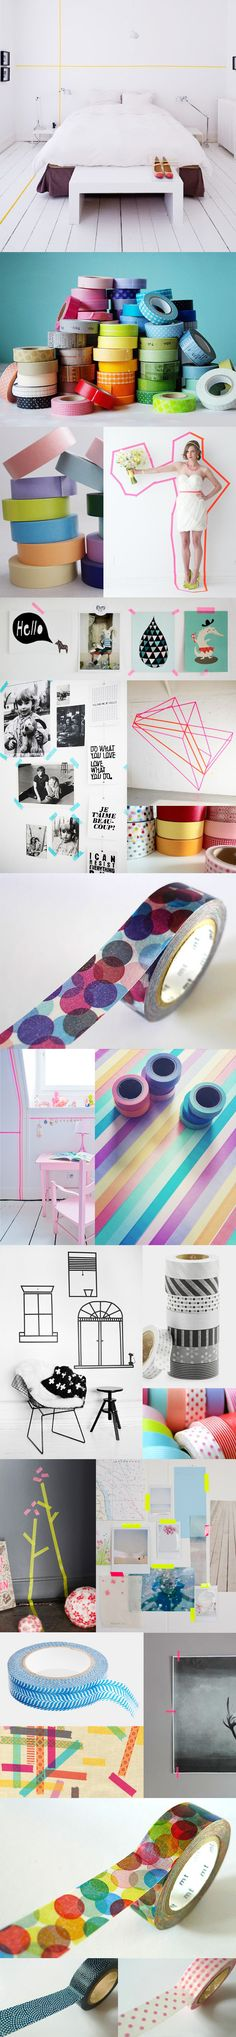 ideas for uses for Washi tape!